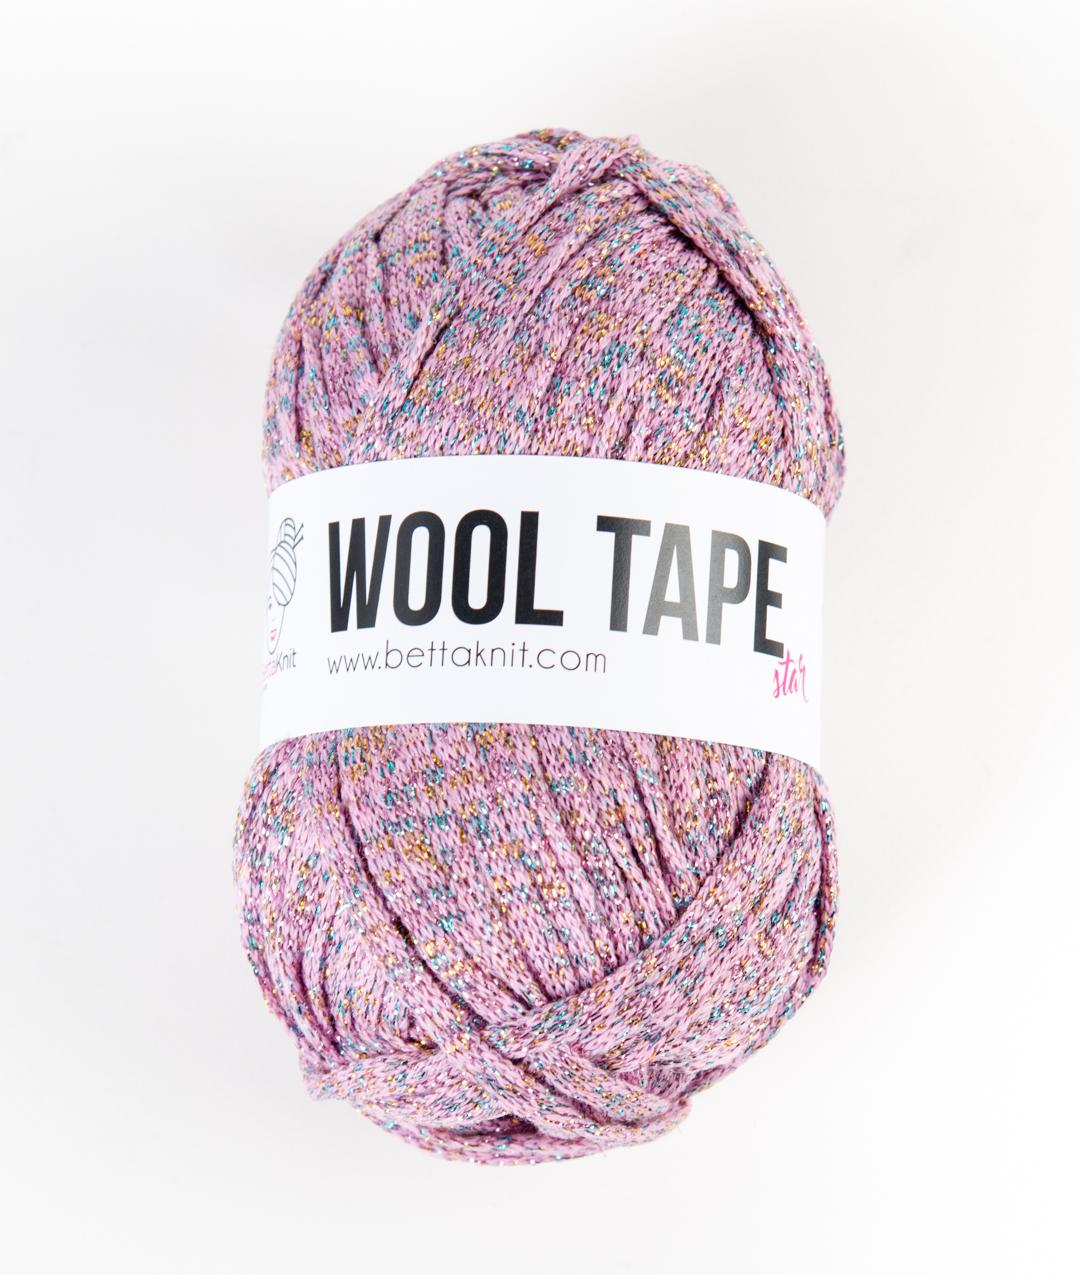 Lurex - Lana - Wool Tape Star - 1